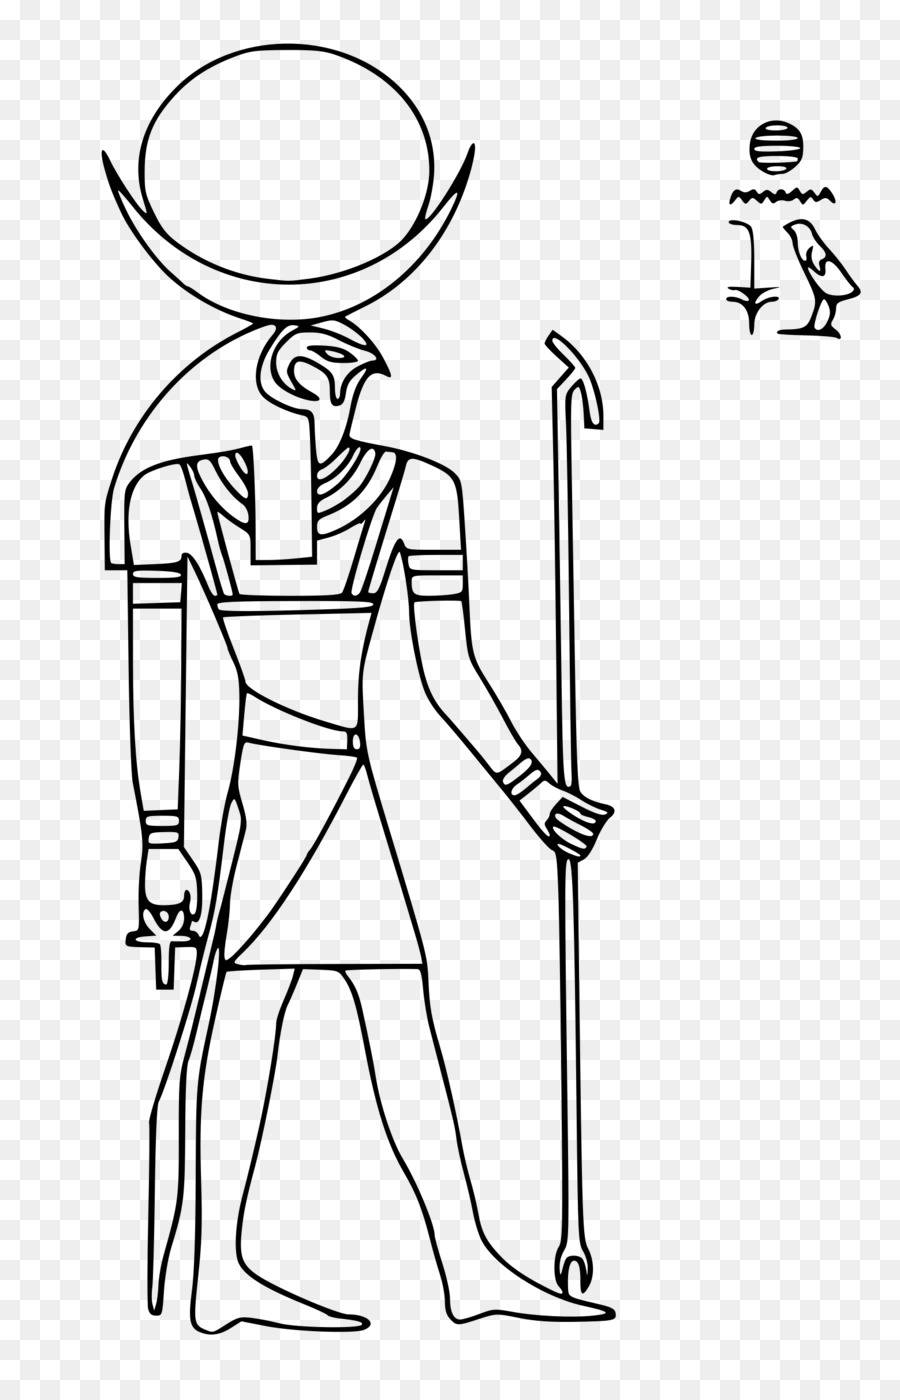 Clipart egyptian gods jpg royalty free library Ancient Egypt Point png download - 1559*2400 - Free Transparent ... jpg royalty free library